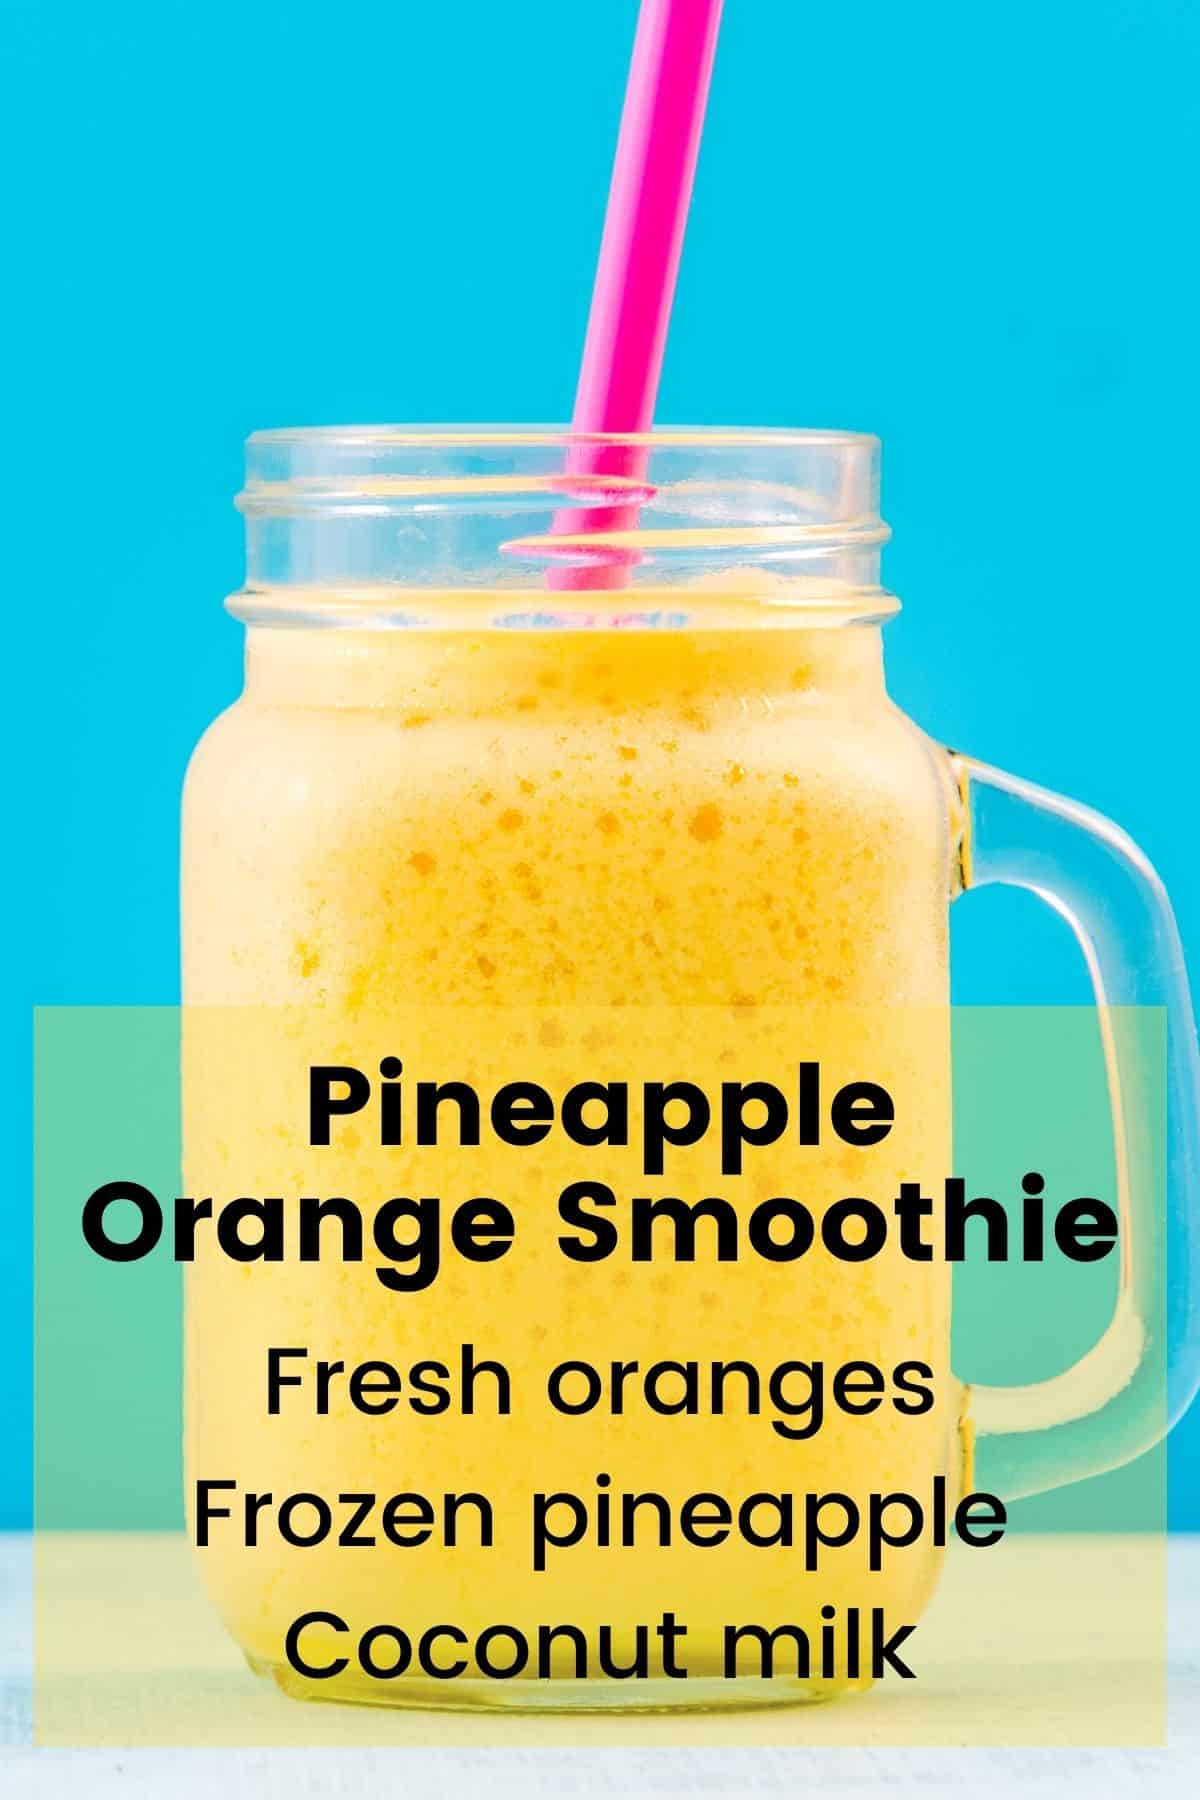 infographic with ingredients for Pineapple Orange Smoothie